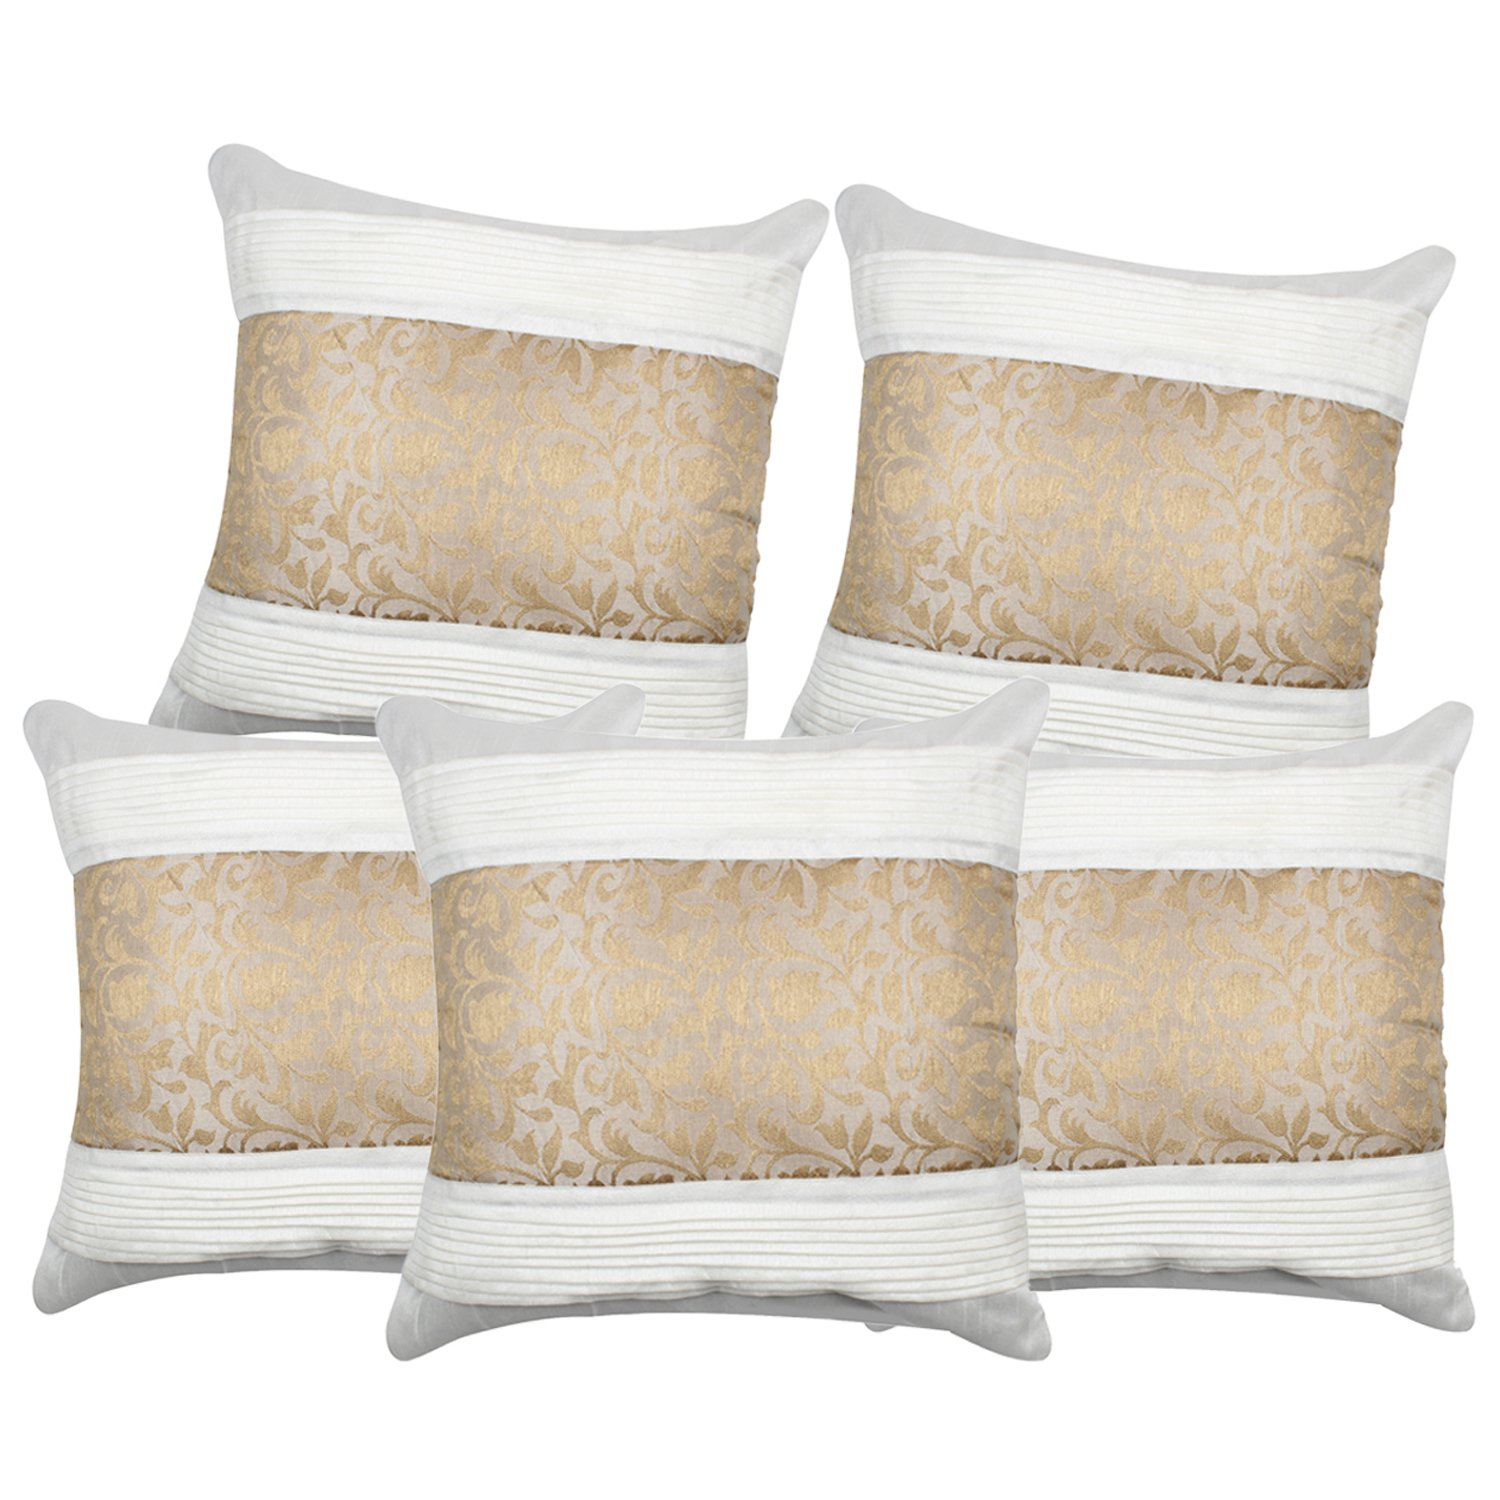 Buy S N TRADERS Cream or Off White Silk Cushion Covers 16x16 Set of 5  Brocade Abstract Striped Design Online at Low Prices in India - Amazon.in